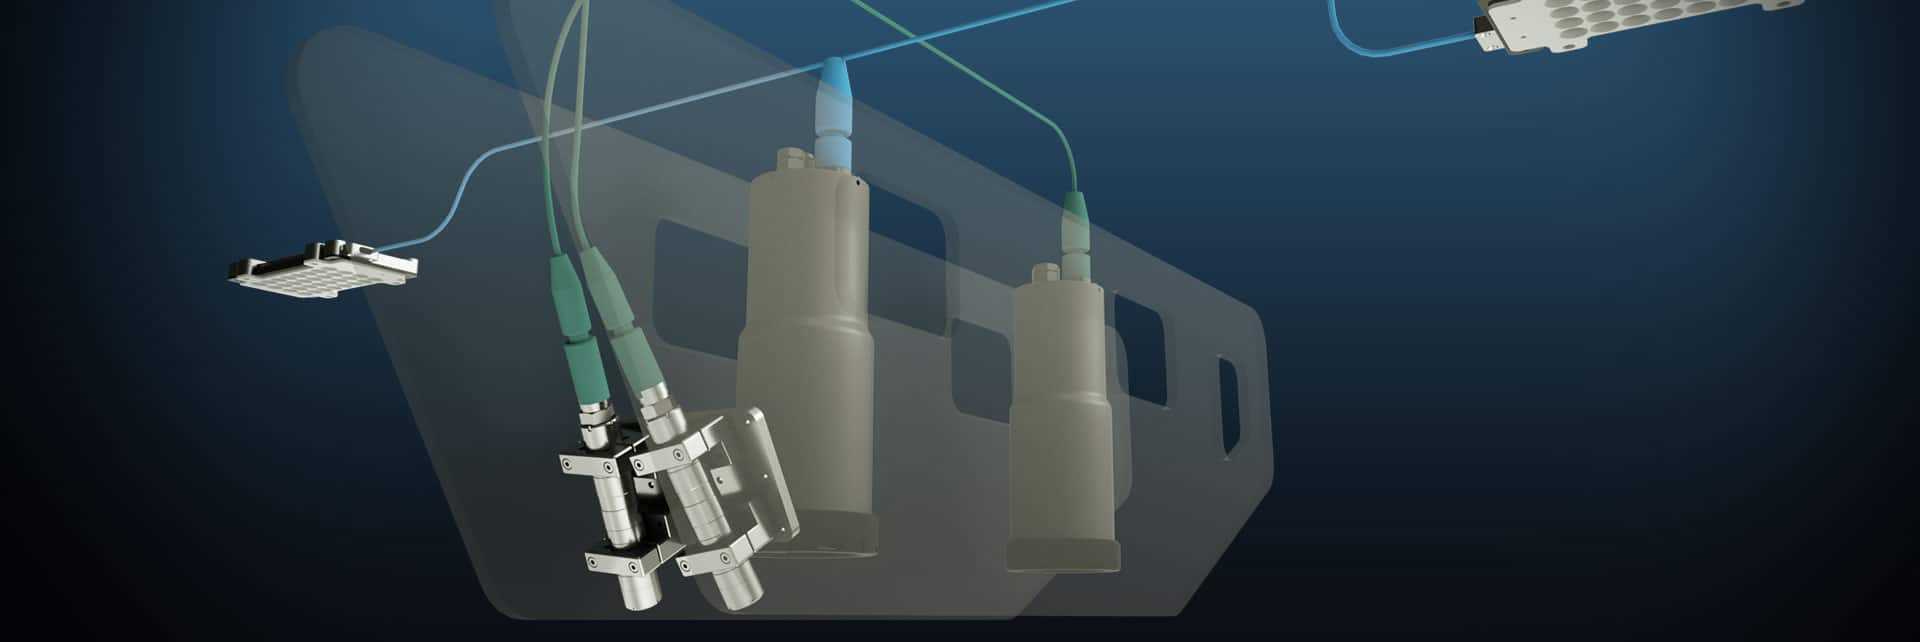 Cathx Ocean Launches Innovative Range of Fully Integrated Laser and Imaging Systems